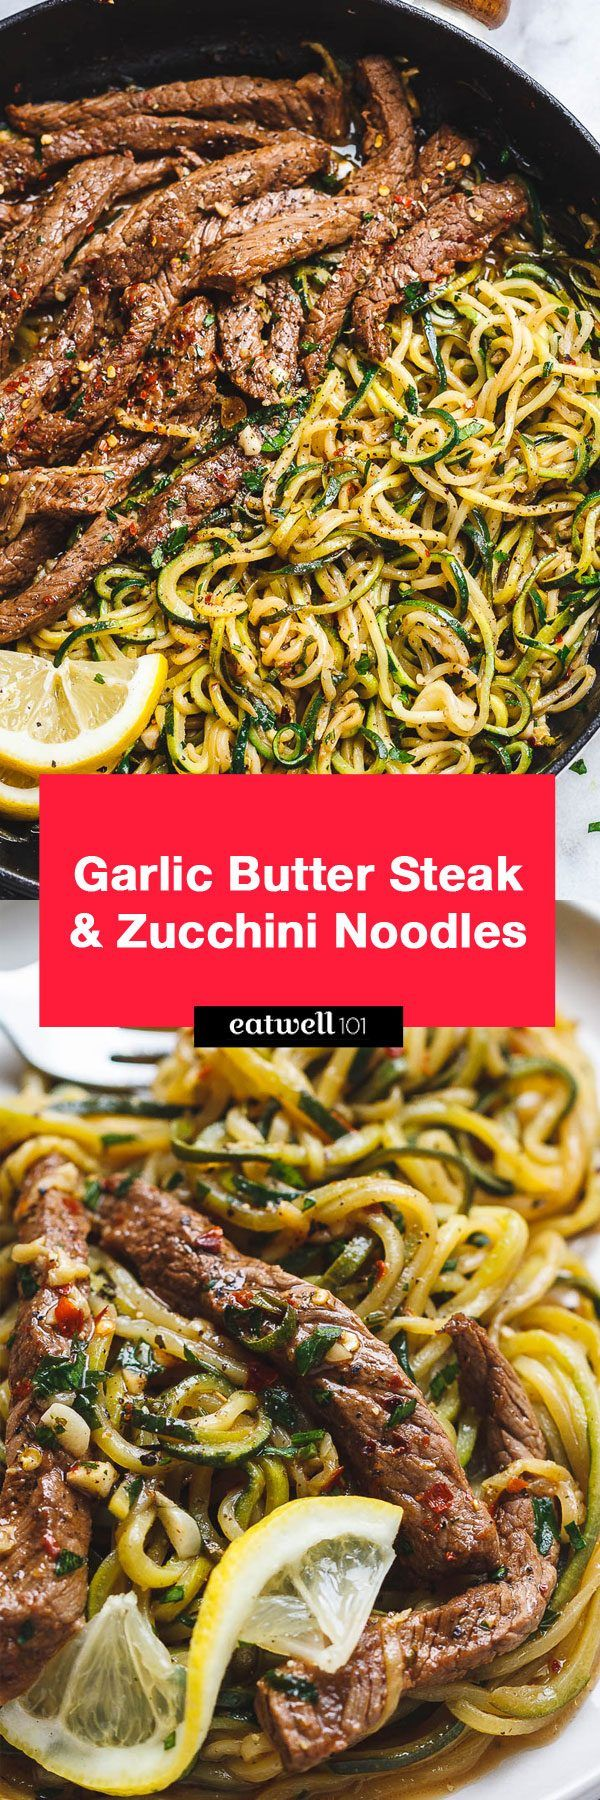 15-Minute Garlic Butter Steak with Zucchini Noodles — - Delicious juicy marinated steak and zucch